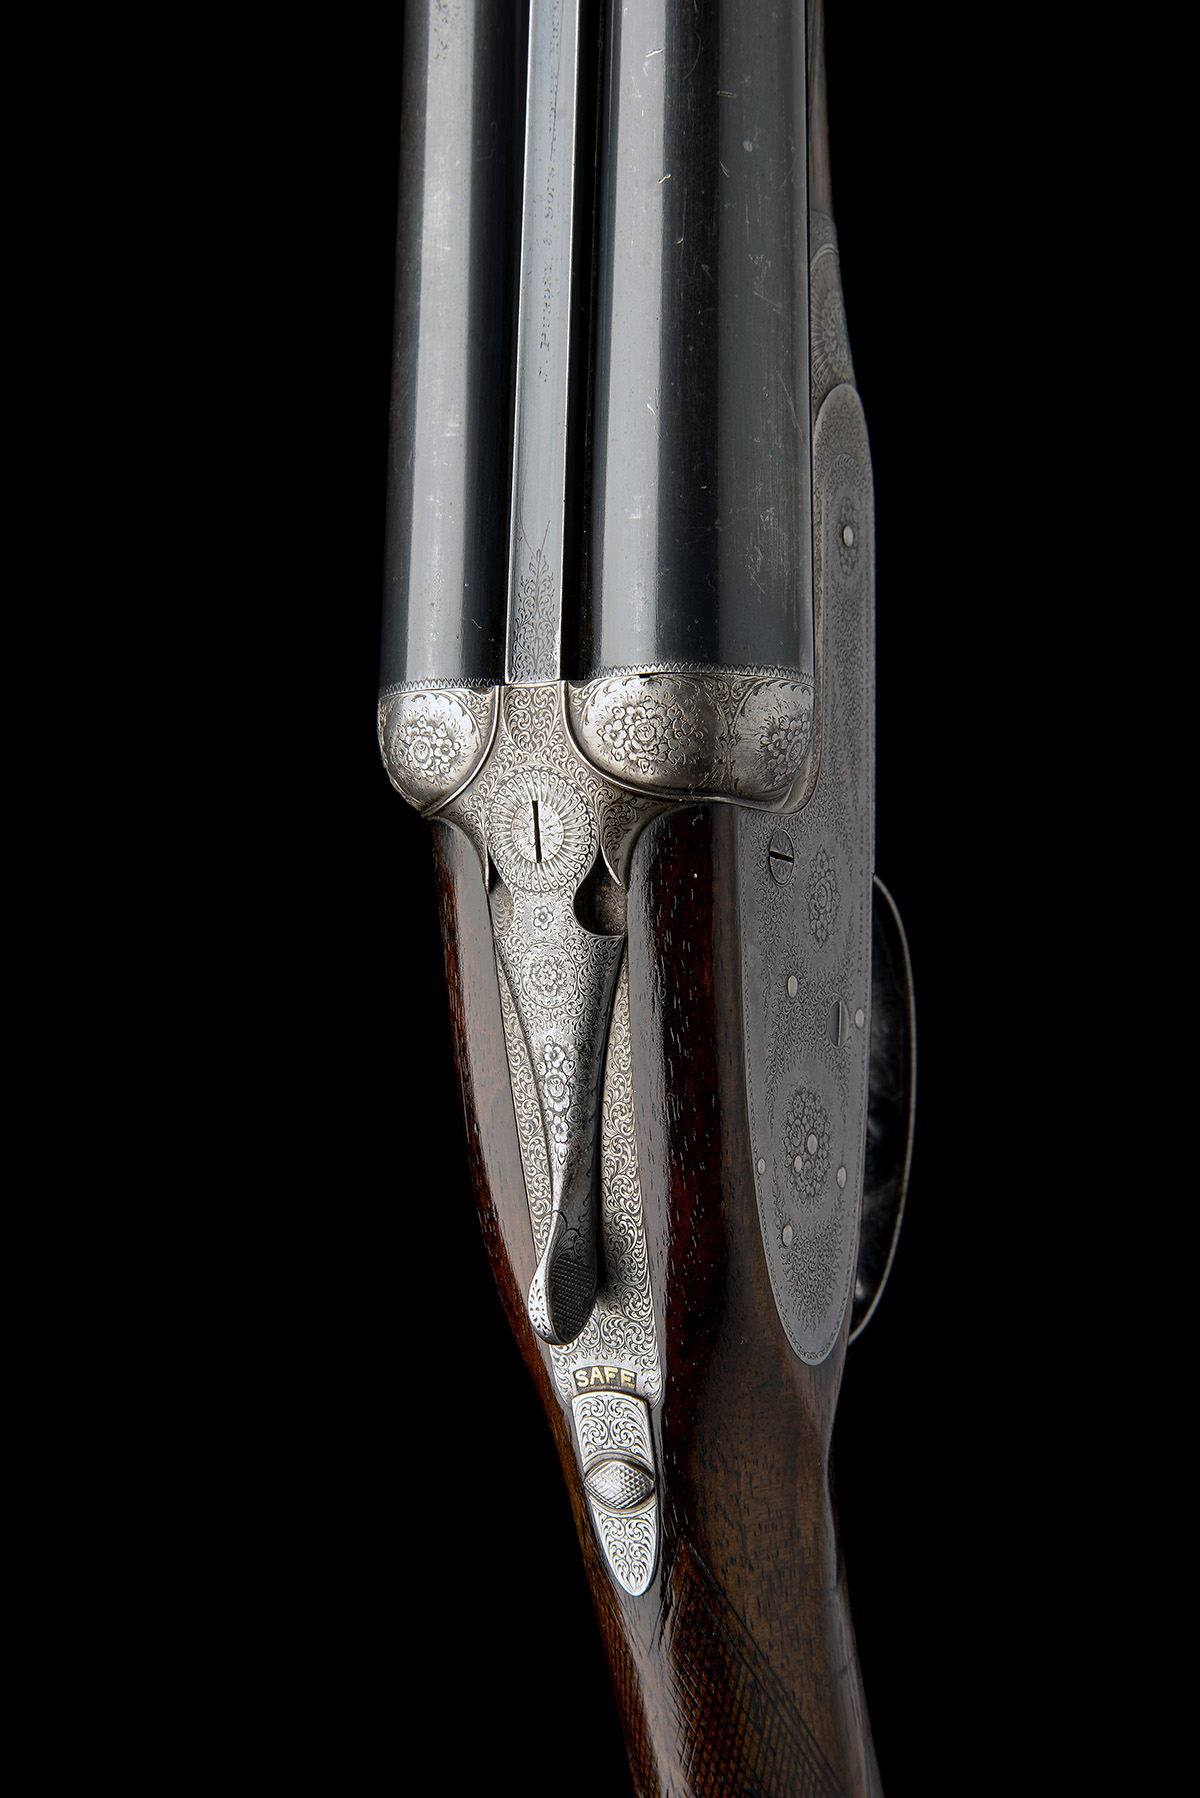 J. PURDEY & SONS A LIGHTWEIGHT 12-BORE ROUNDED-BAR SELF-OPENING SIDELOCK EJECTOR, serial no. - Image 4 of 9